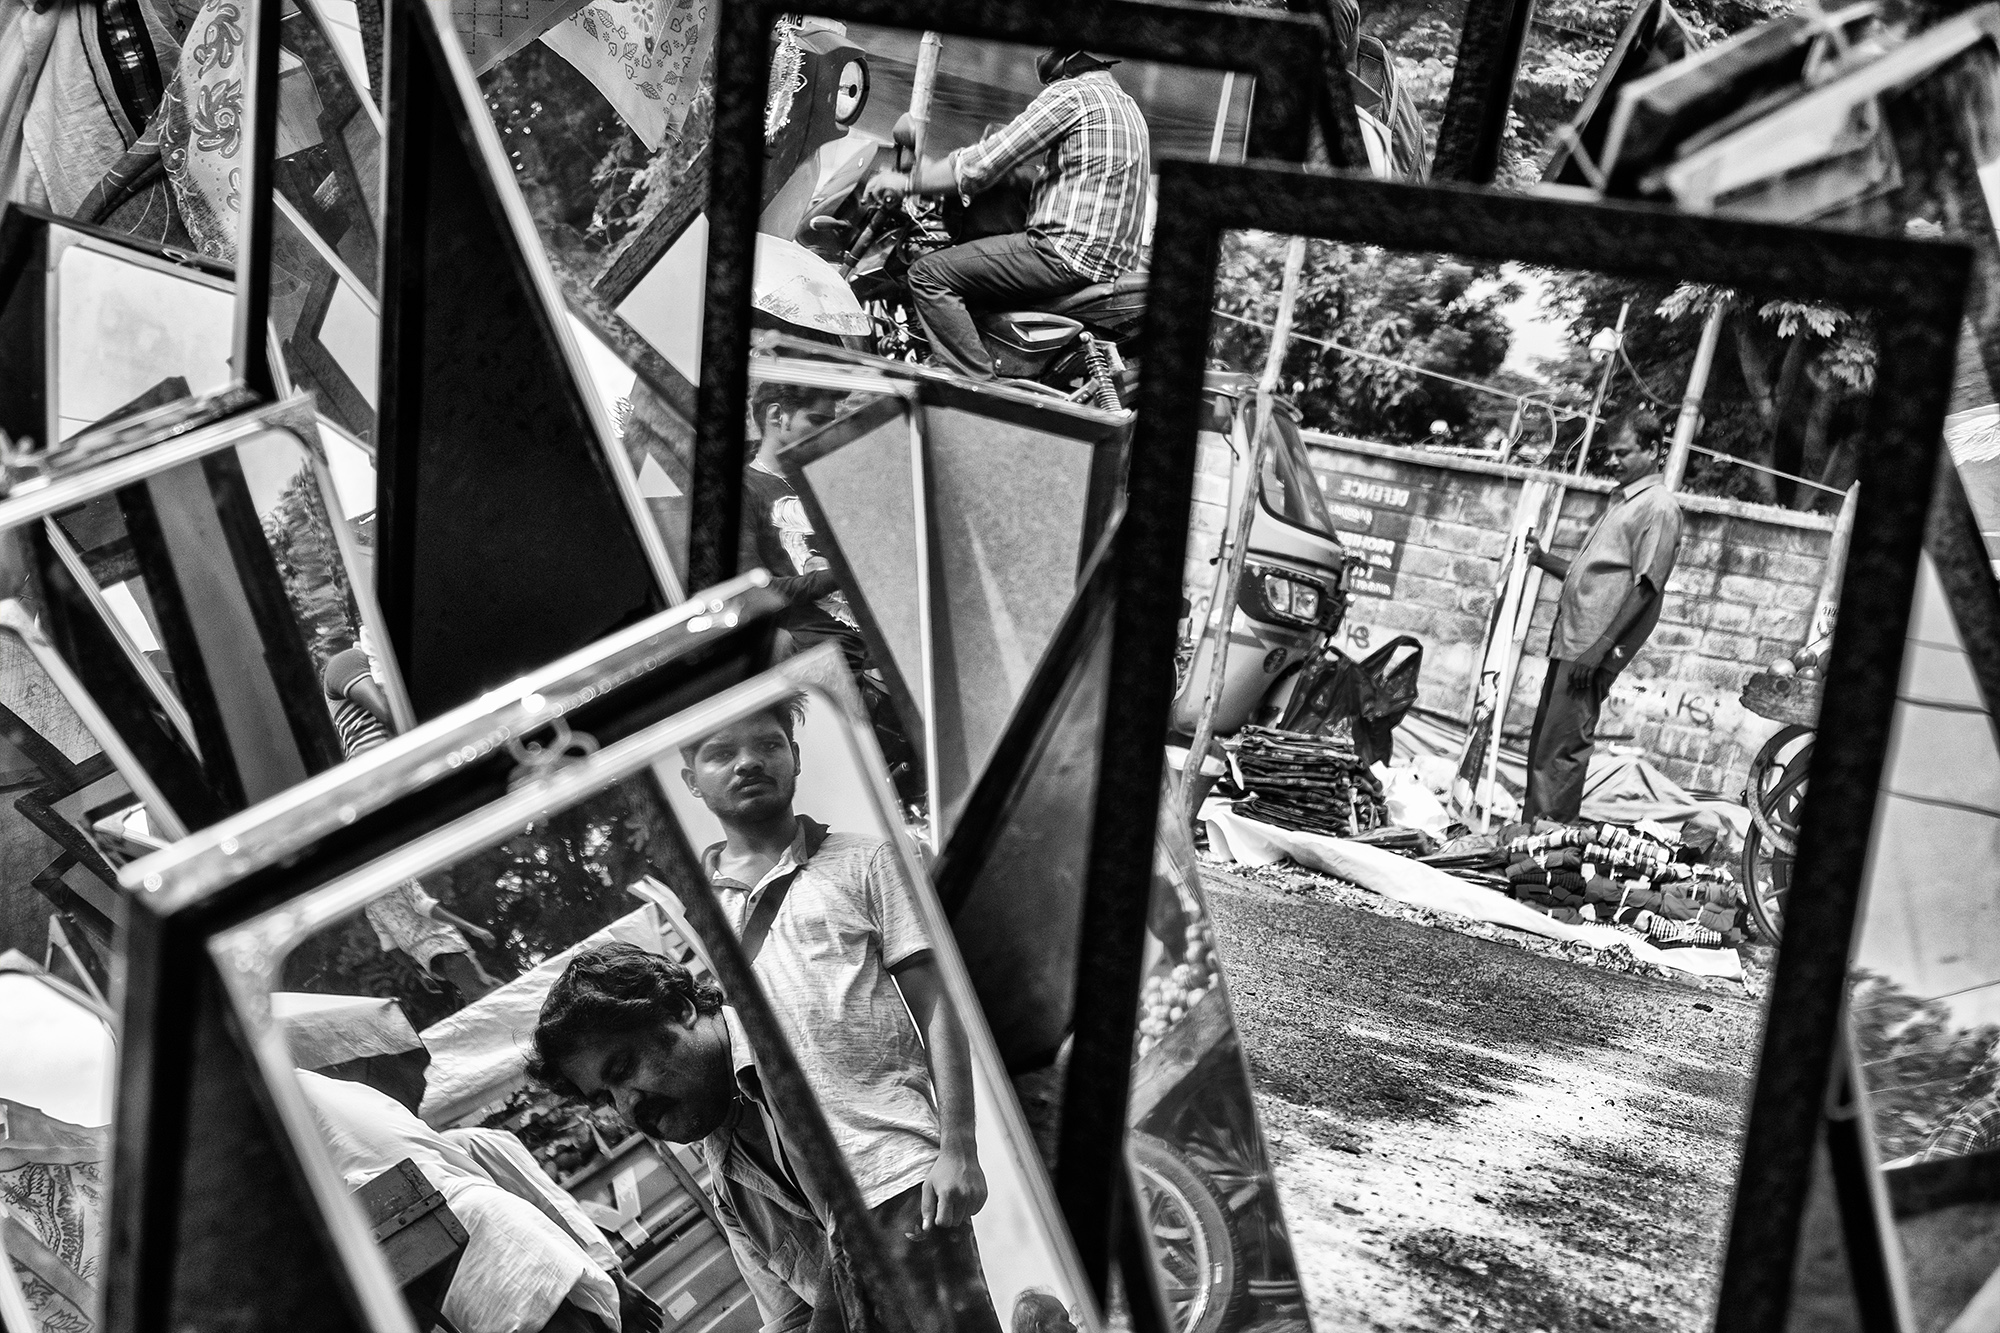 A roadside mirror shop where lots of mirrors were for display and it was looking very dramatic in the reflection of those mirrors. The toughest part was to hide my presence in the frames.